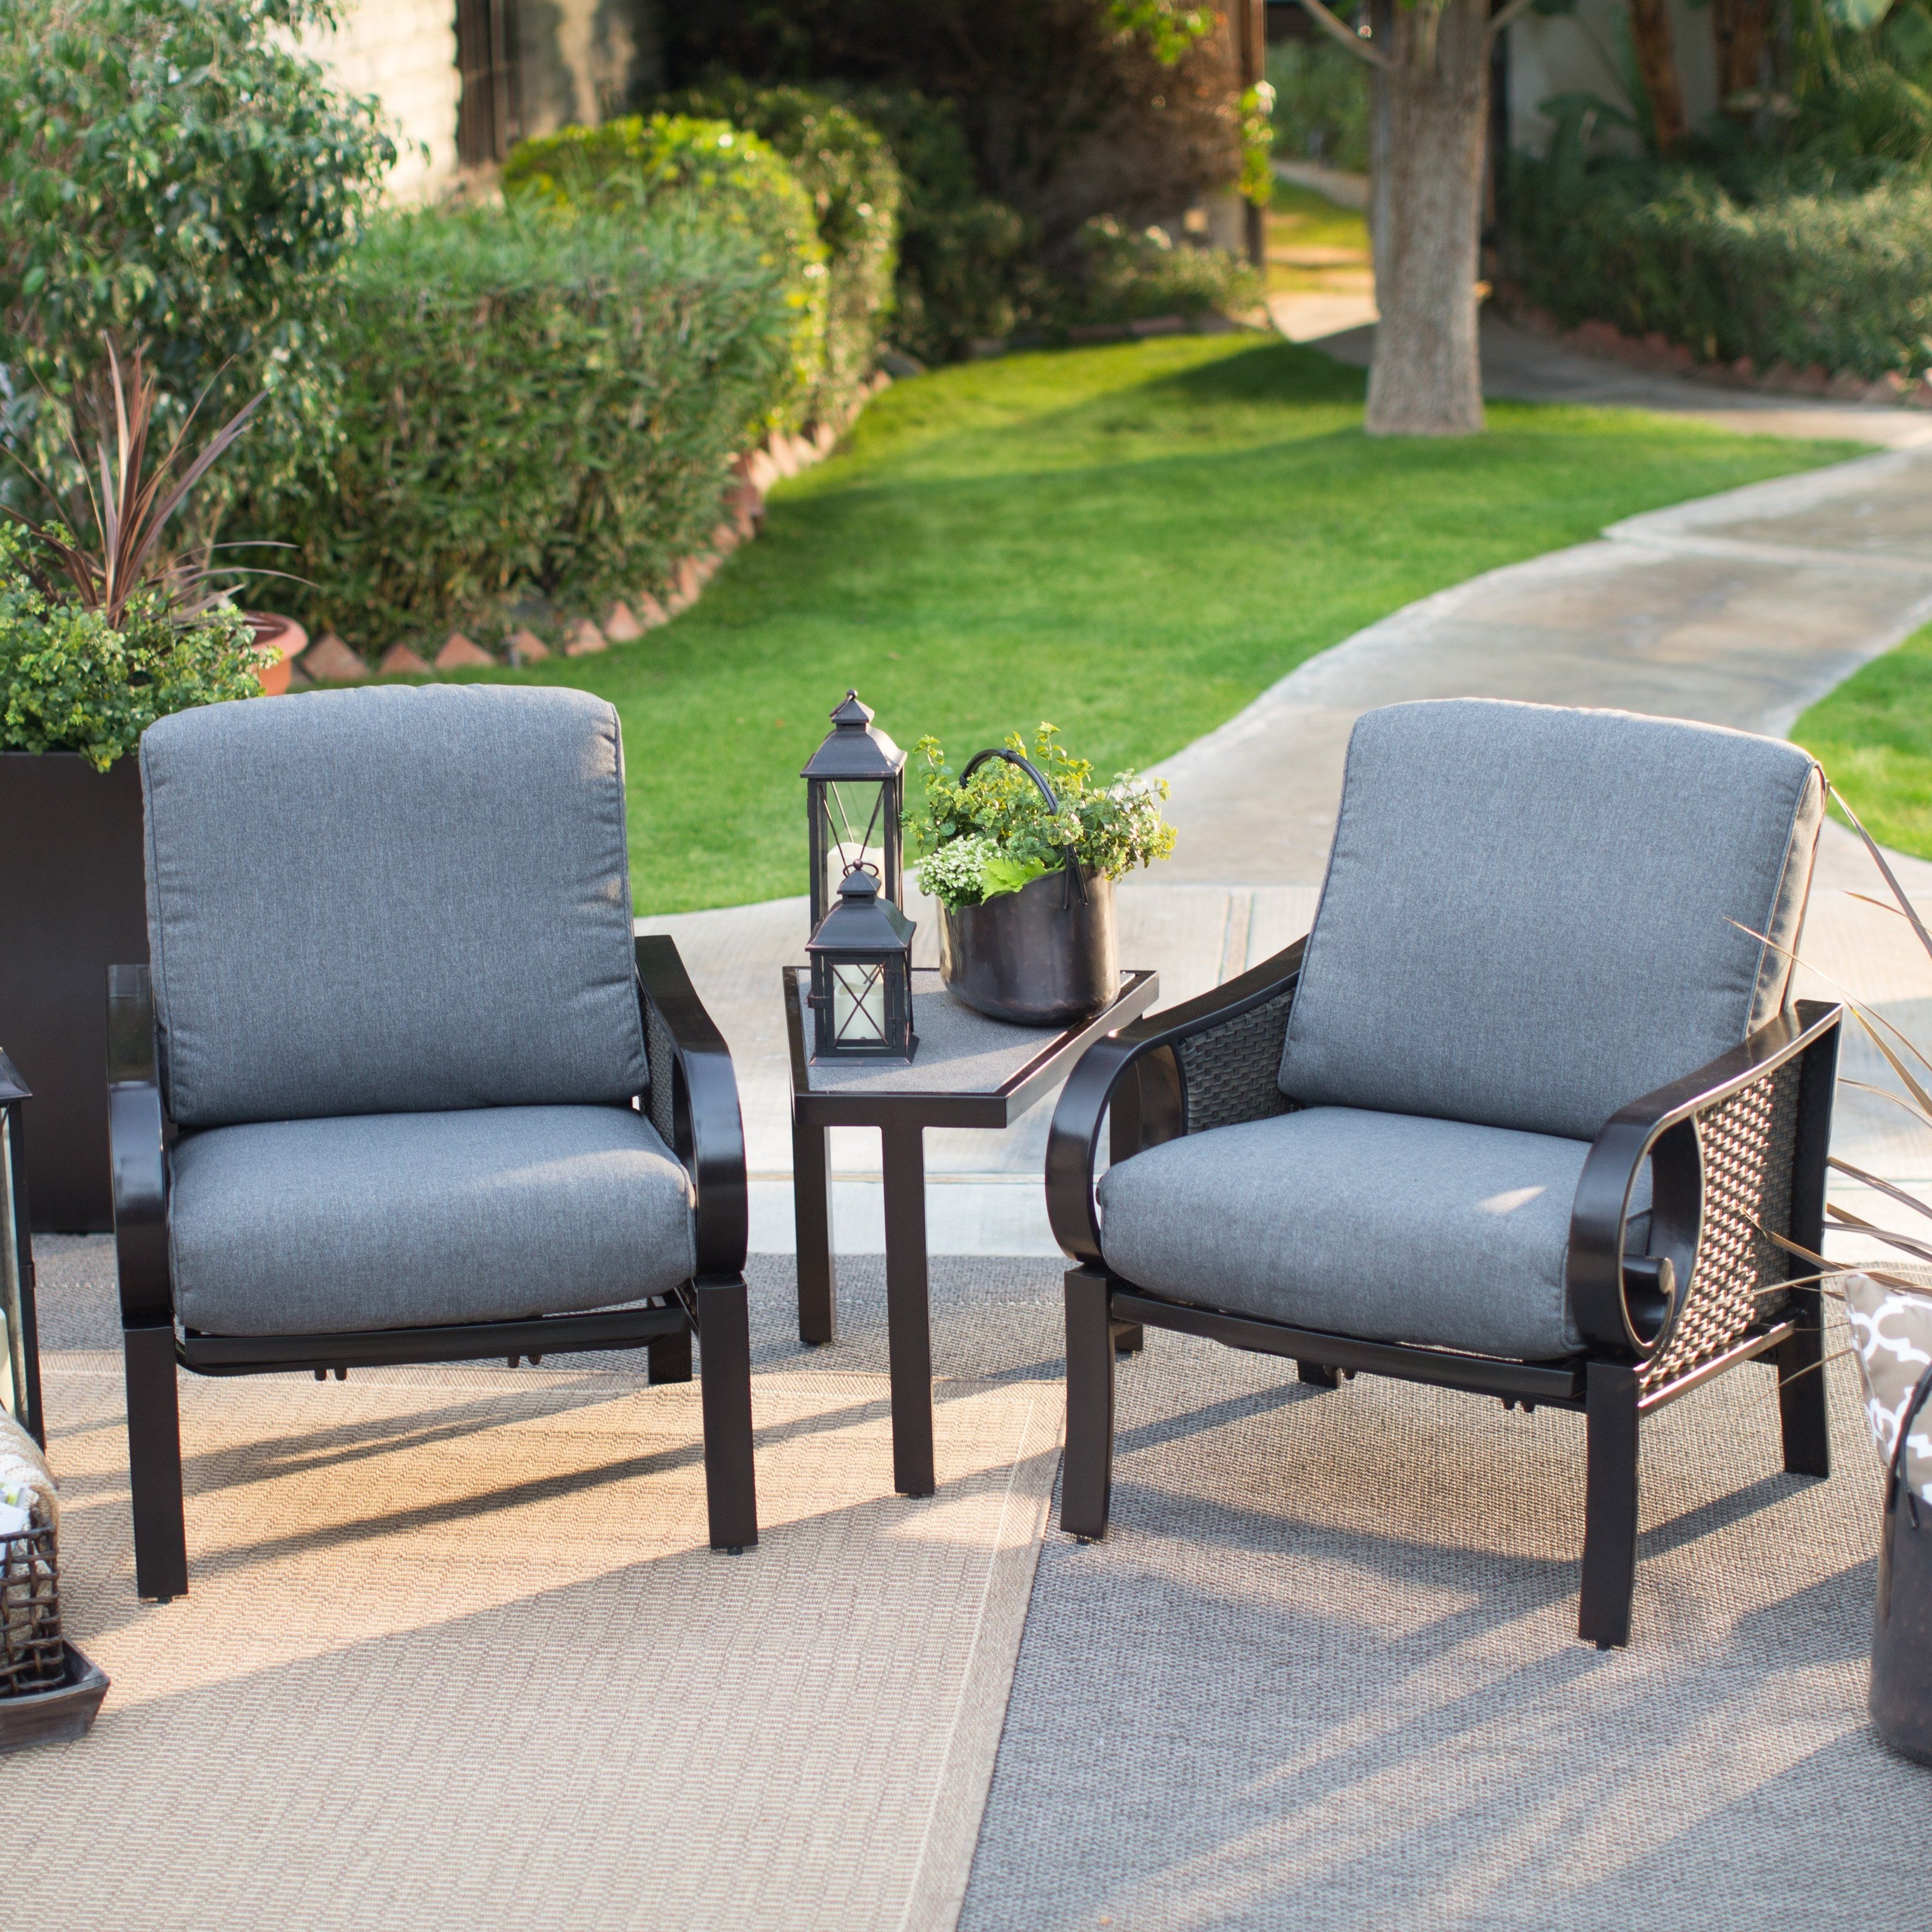 3 Piece Patio Conversation Sets Pertaining To Well Known Have To Have It (View 8 of 15)